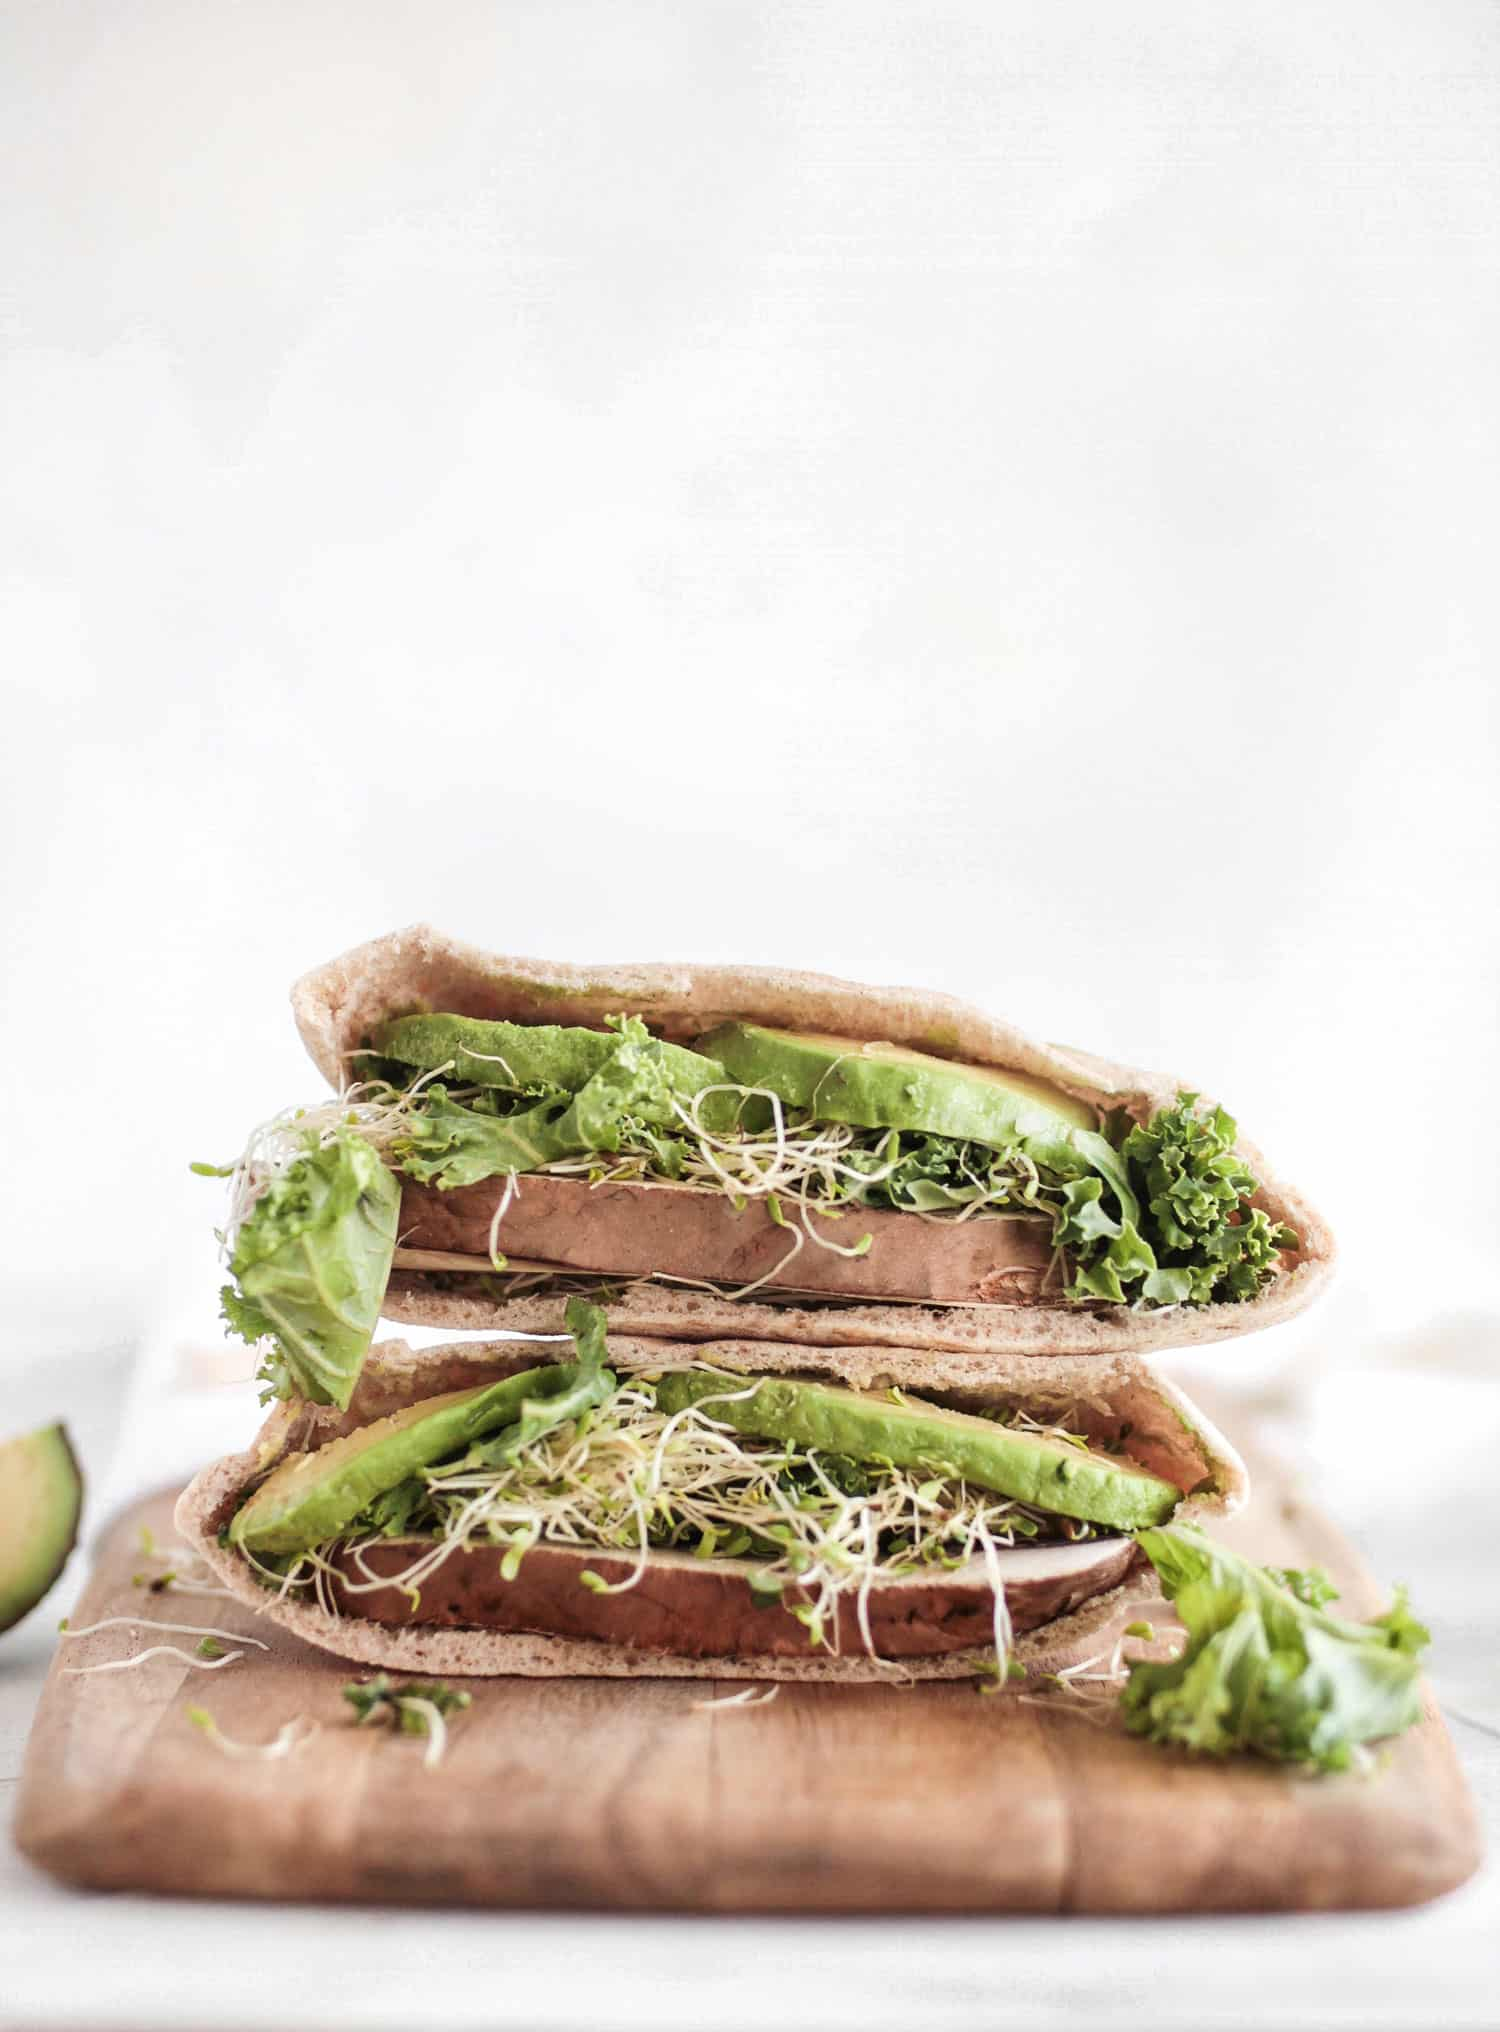 Sprout and Avocado Pita Sandwich